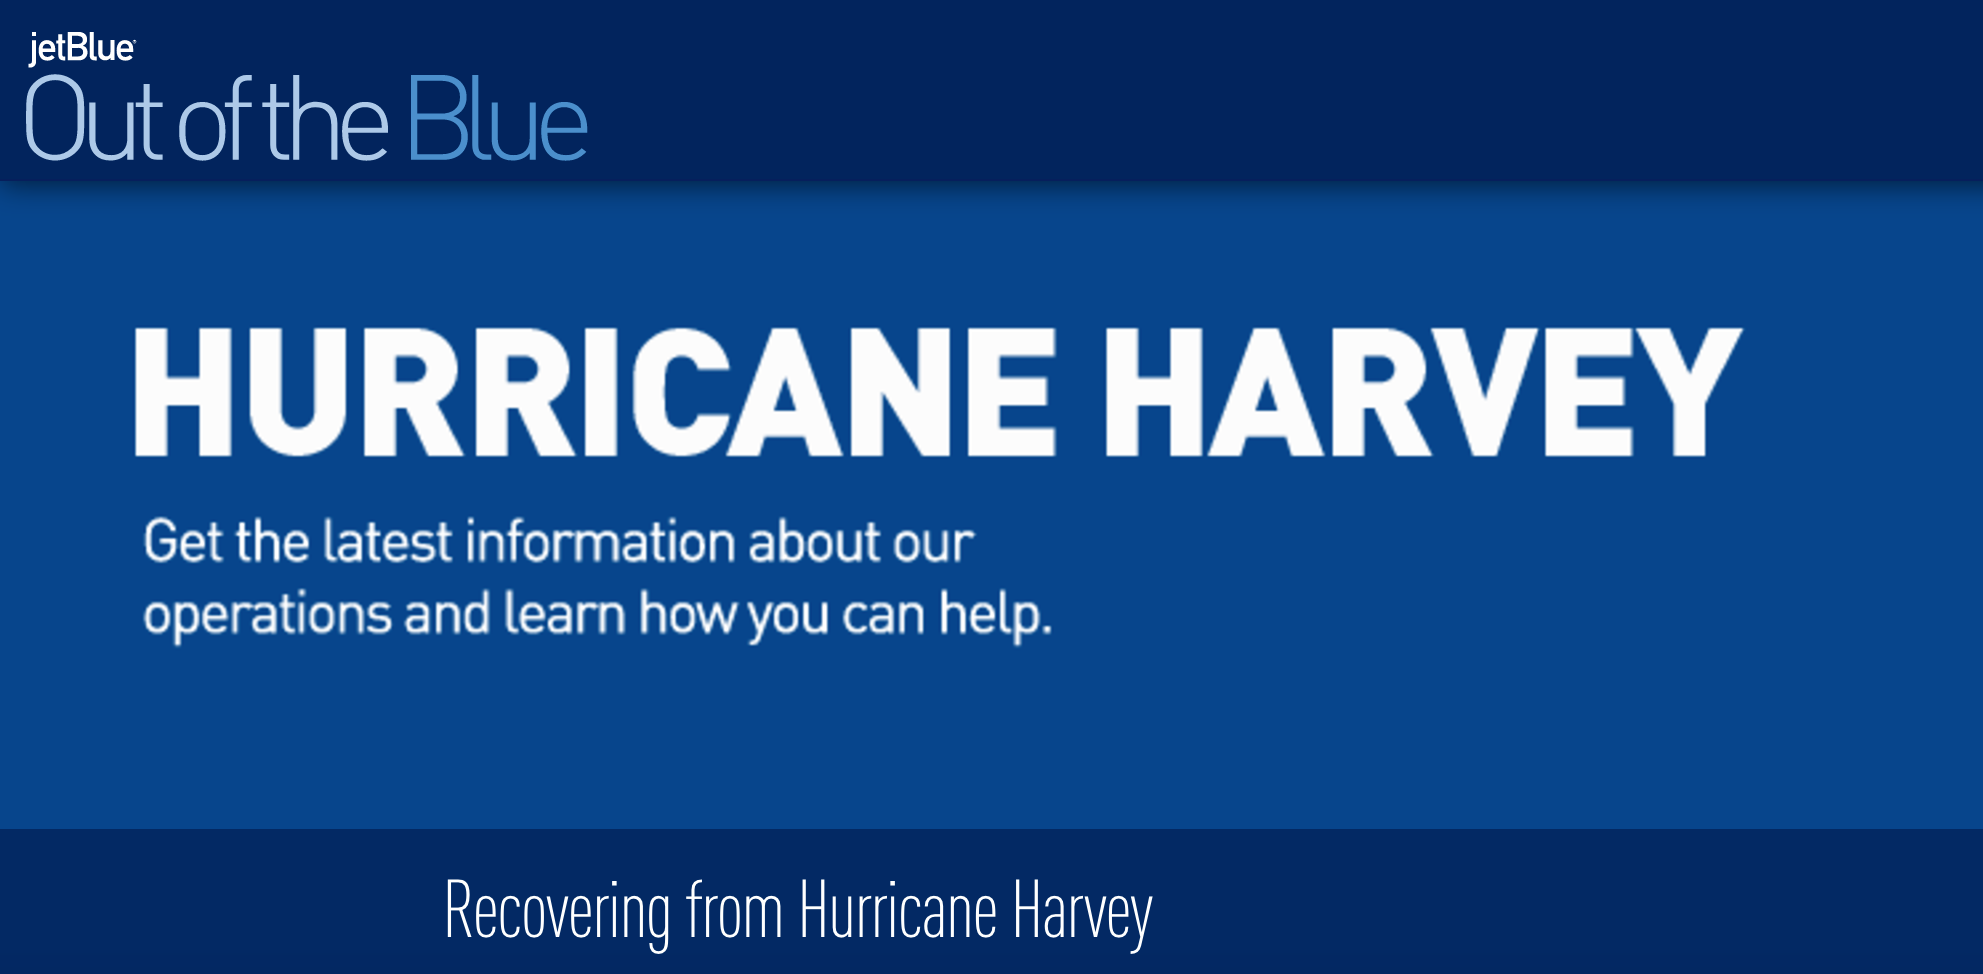 JetBlue Hurricane Harvey Relief Efforts